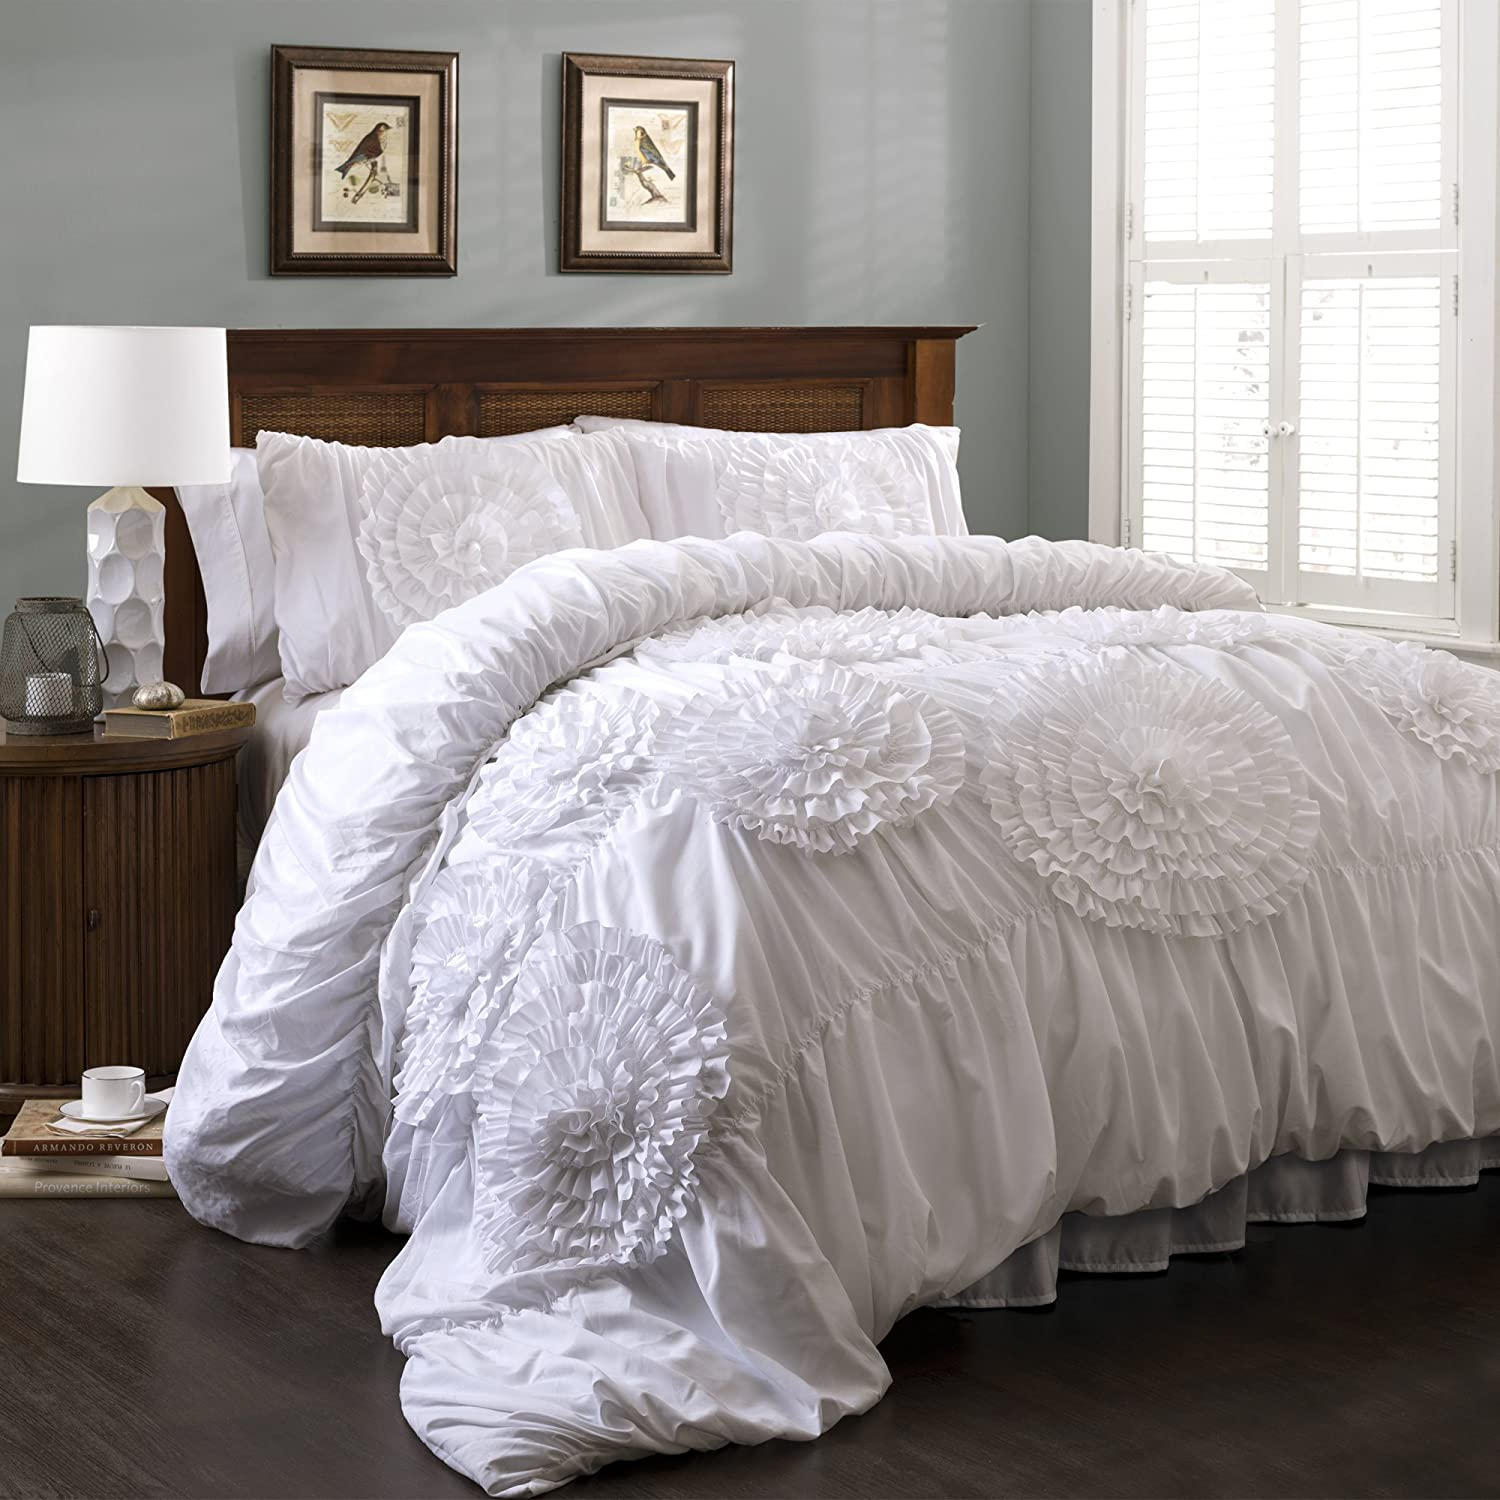 Lovely white bedding sets for Bedroom quilt ideas